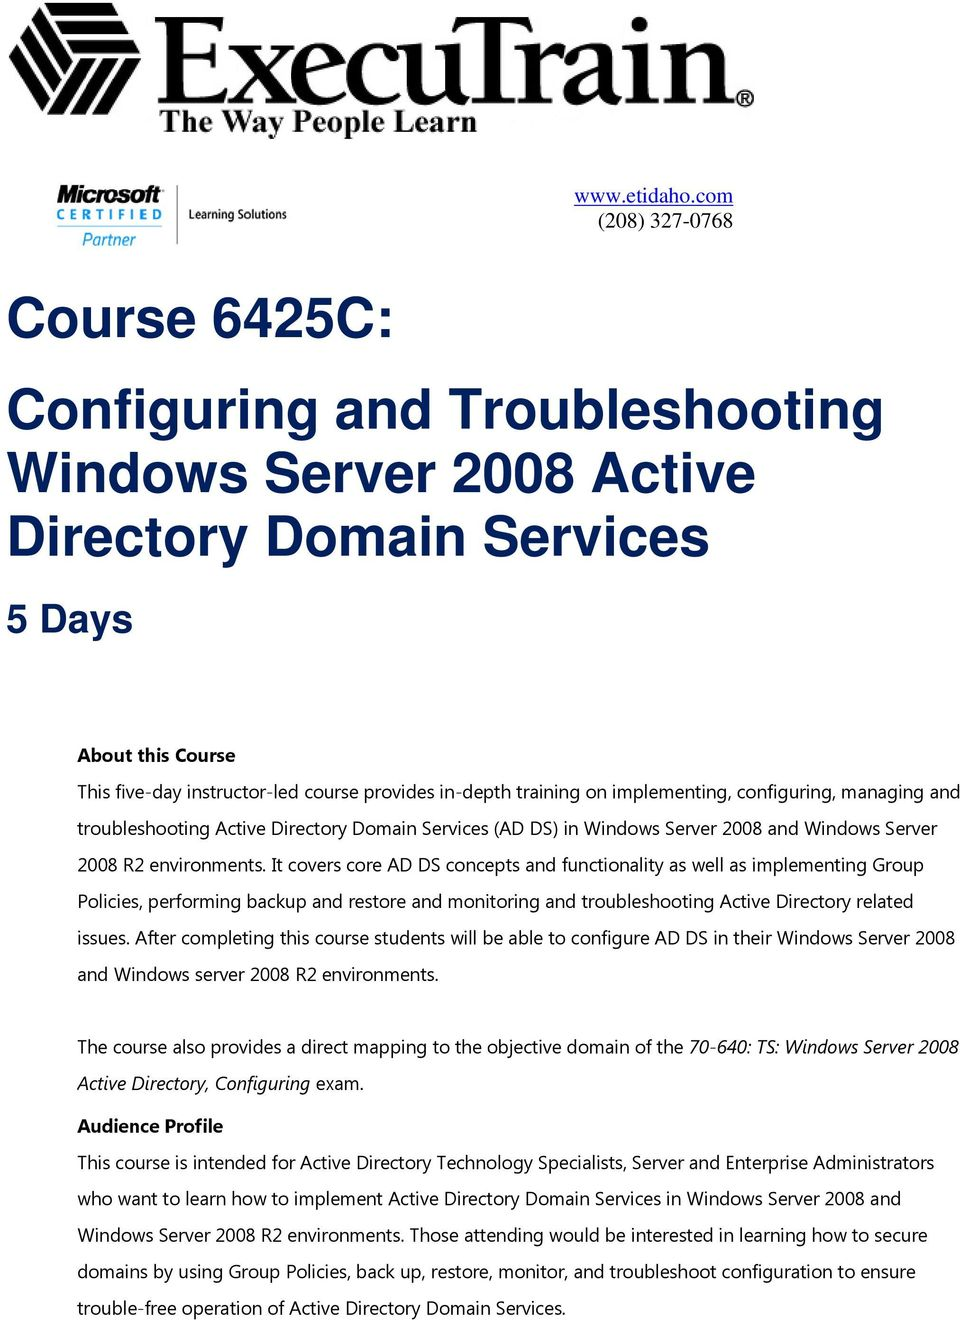 training on implementing, configuring, managing and troubleshooting Active Directory Domain Services (AD DS) in Windows Server 2008 and Windows Server 2008 R2 environments.